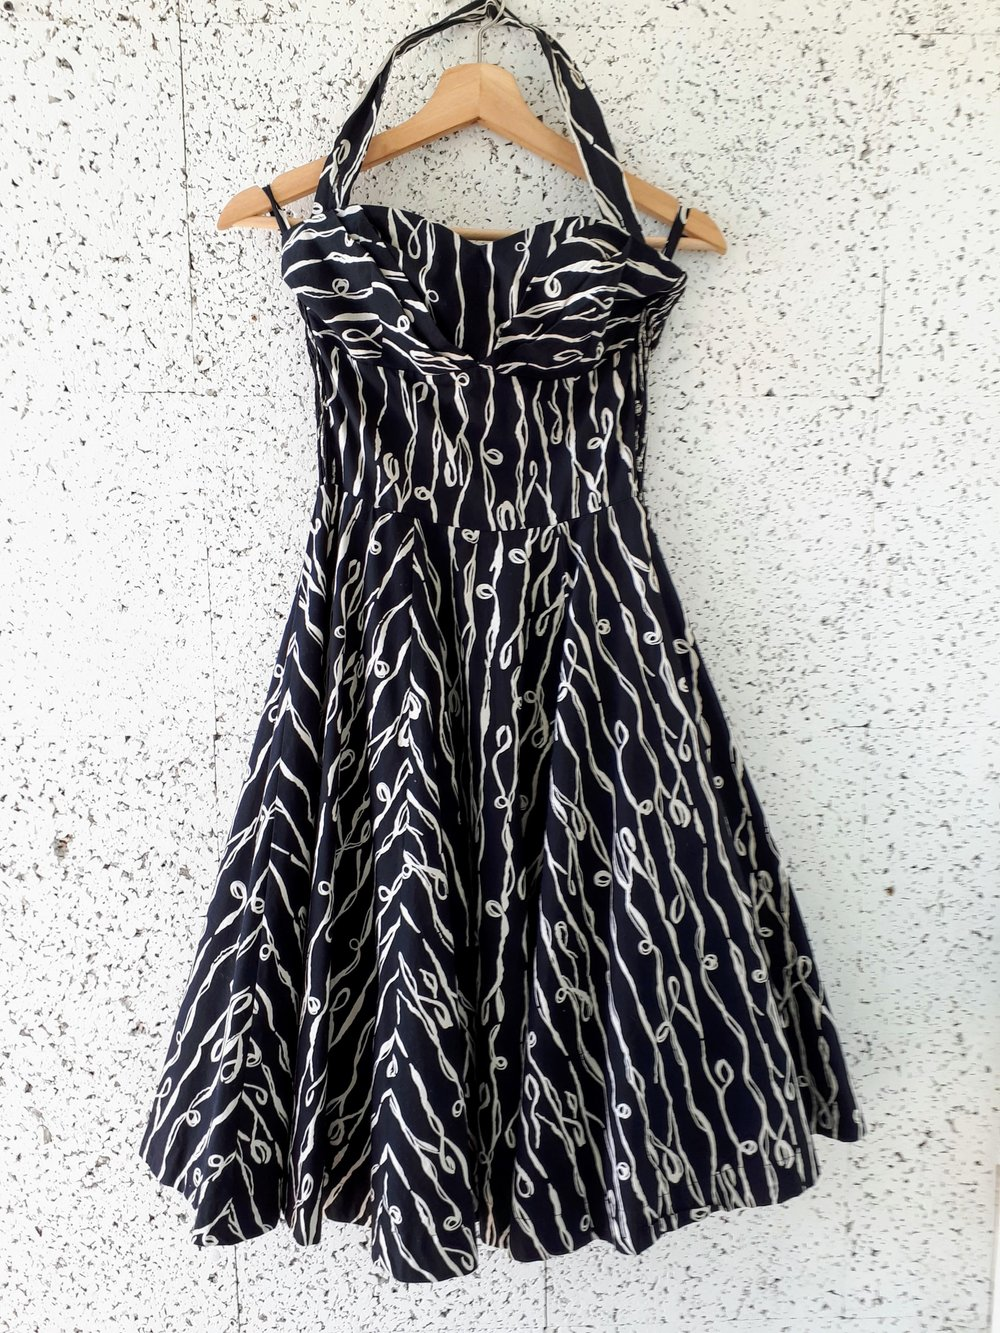 Girls of Savoy dress; Size S, $45